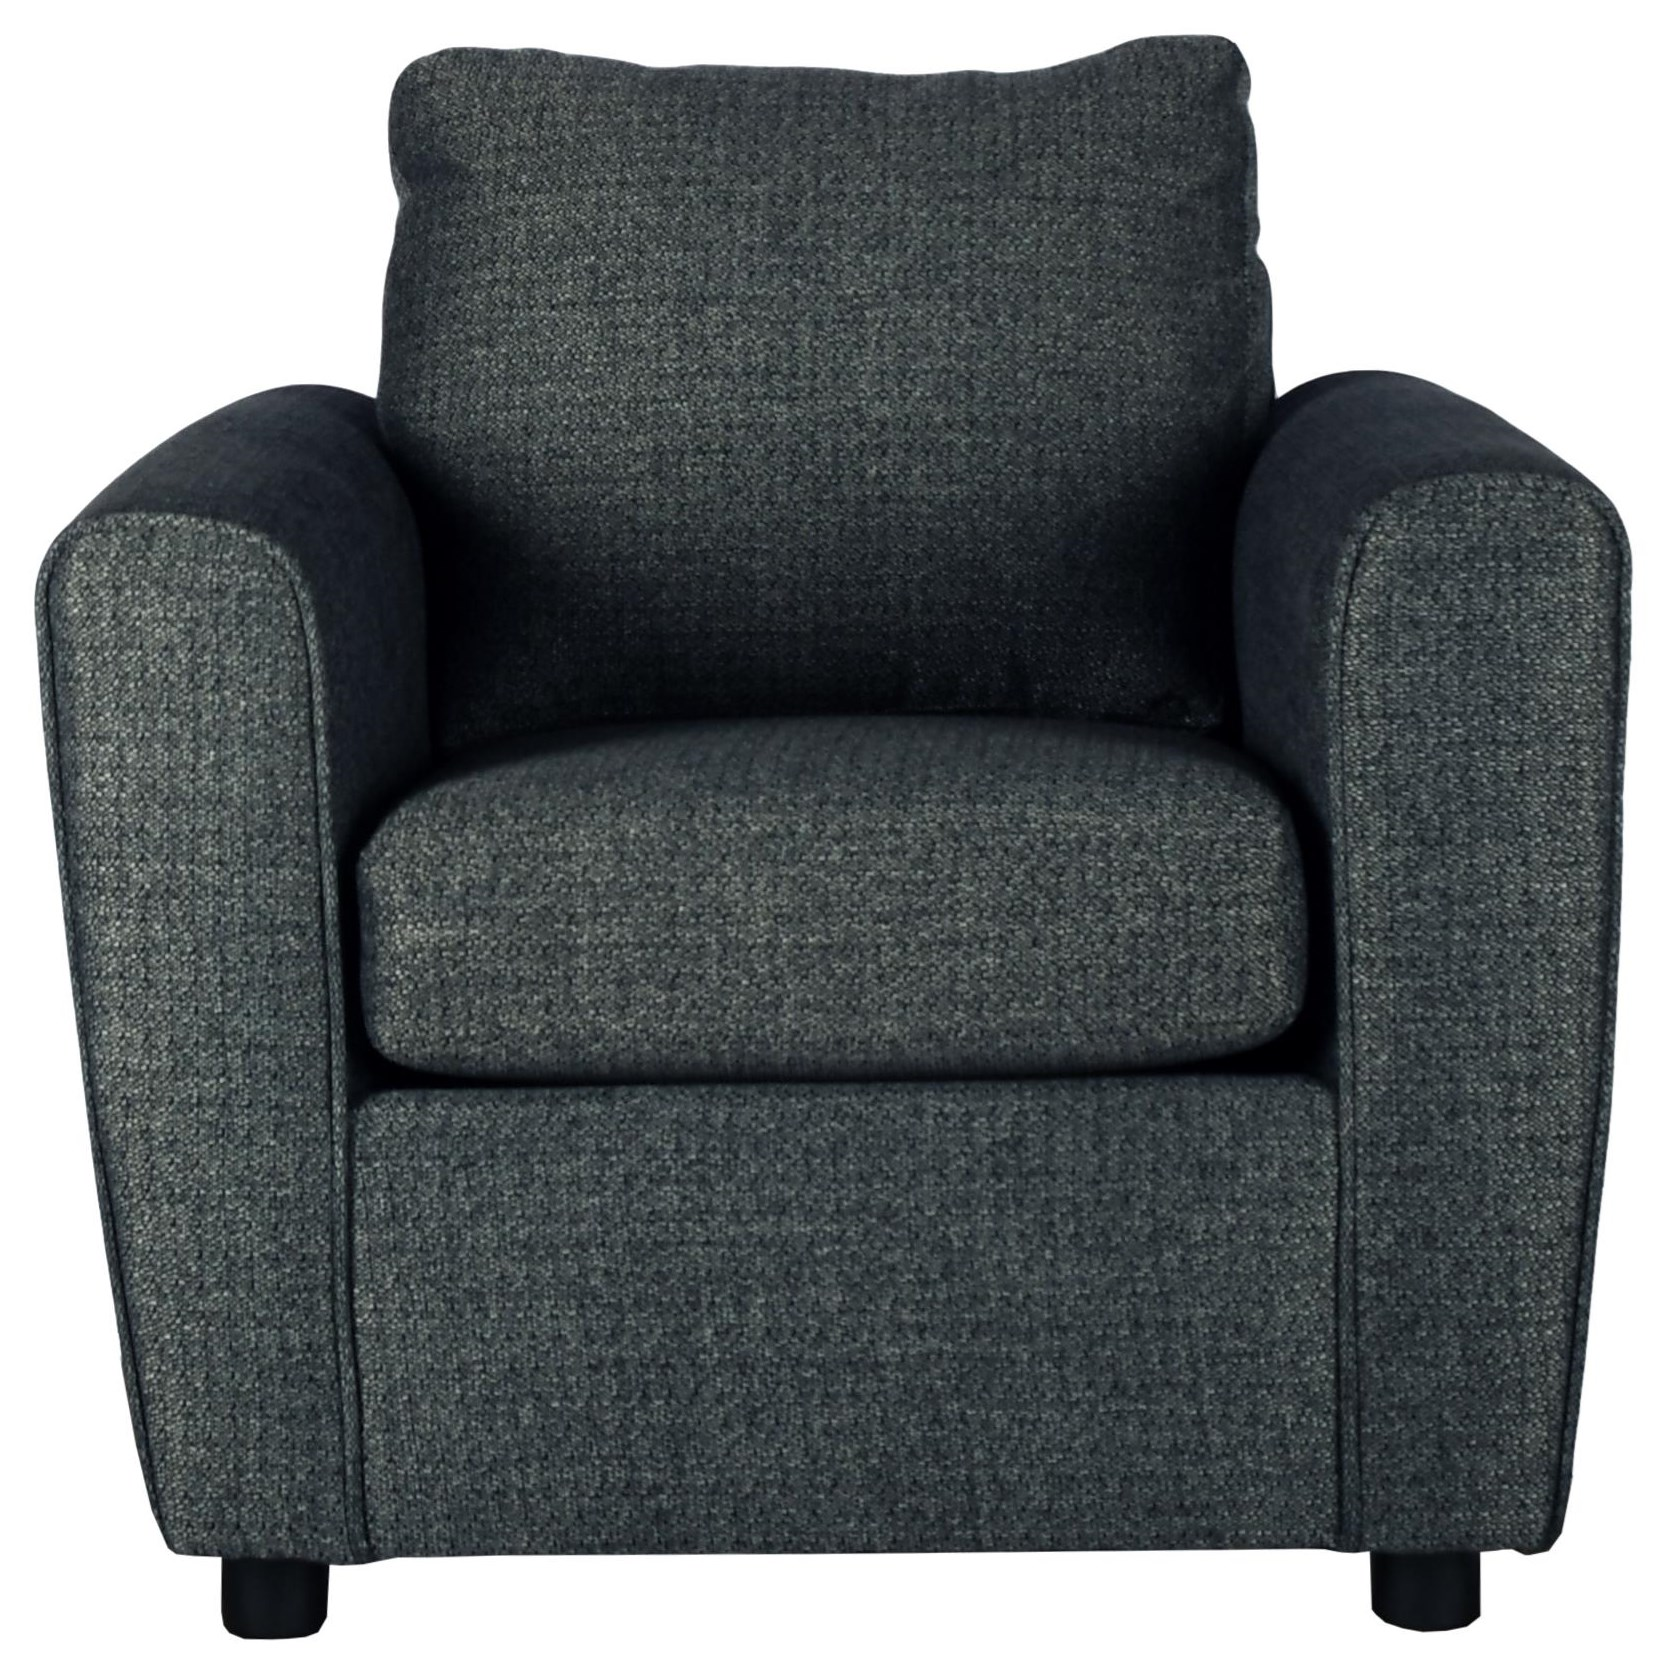 1636 Chair at Bennett's Furniture and Mattresses